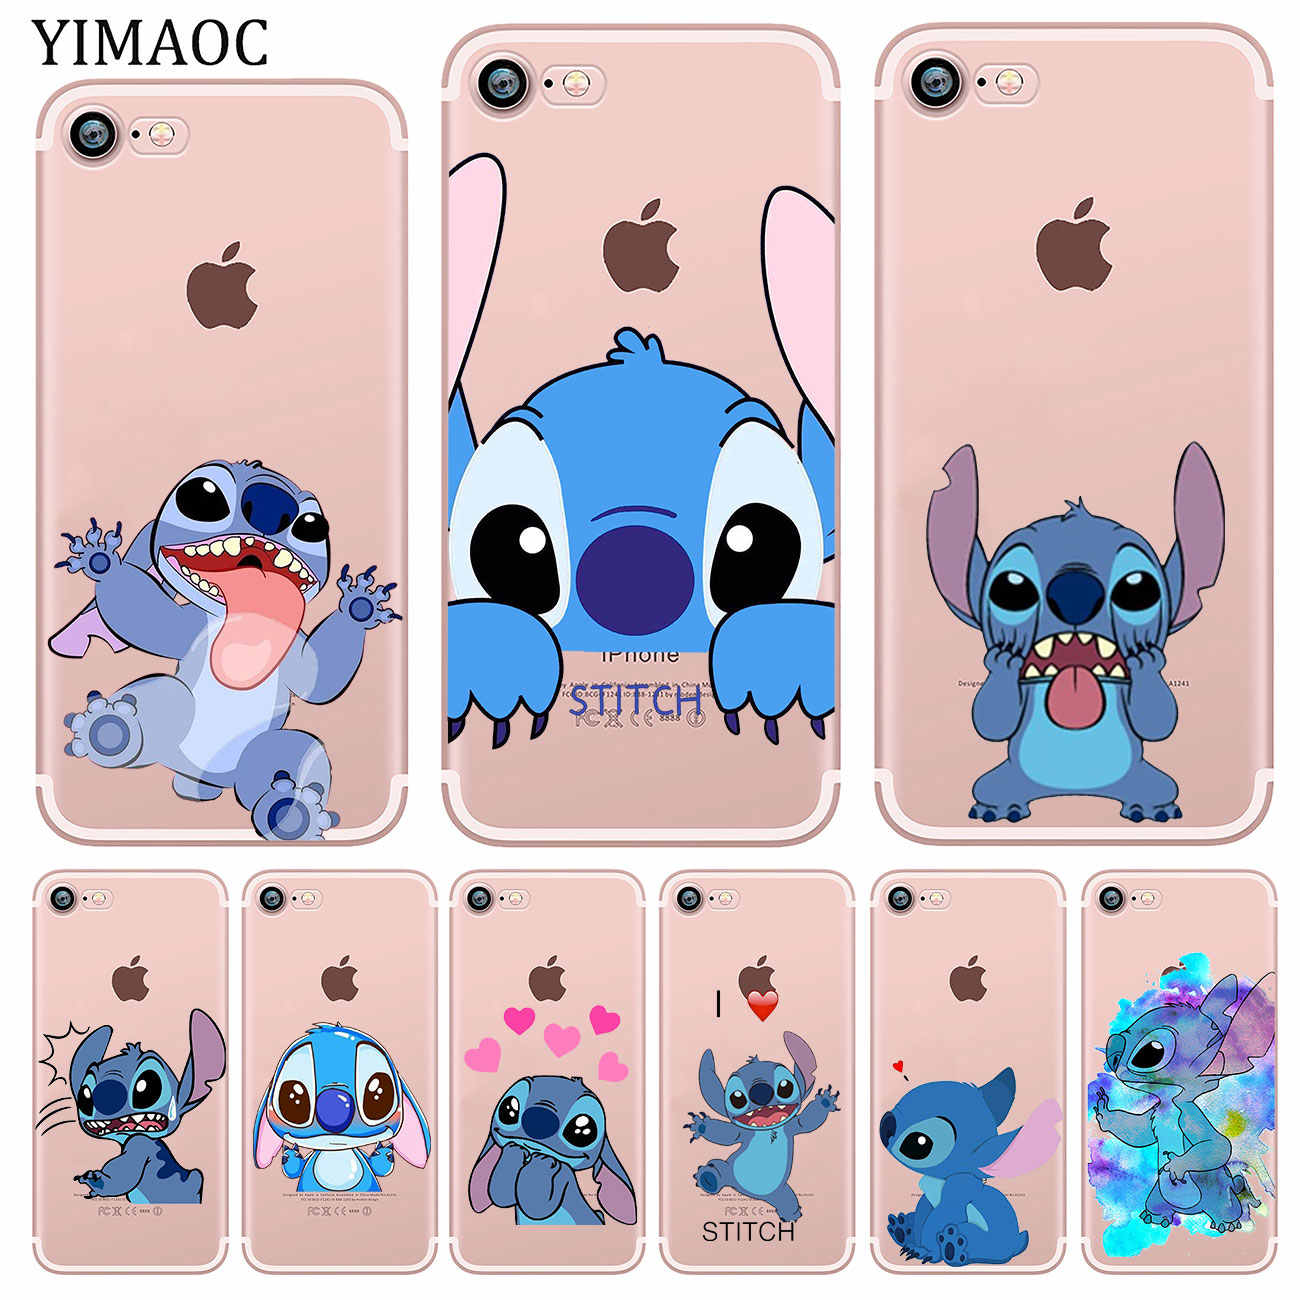 outlet store sale 71440 90df6 Detail Feedback Questions about YIMAOC Lilo & Stitch Pengiun Star ...